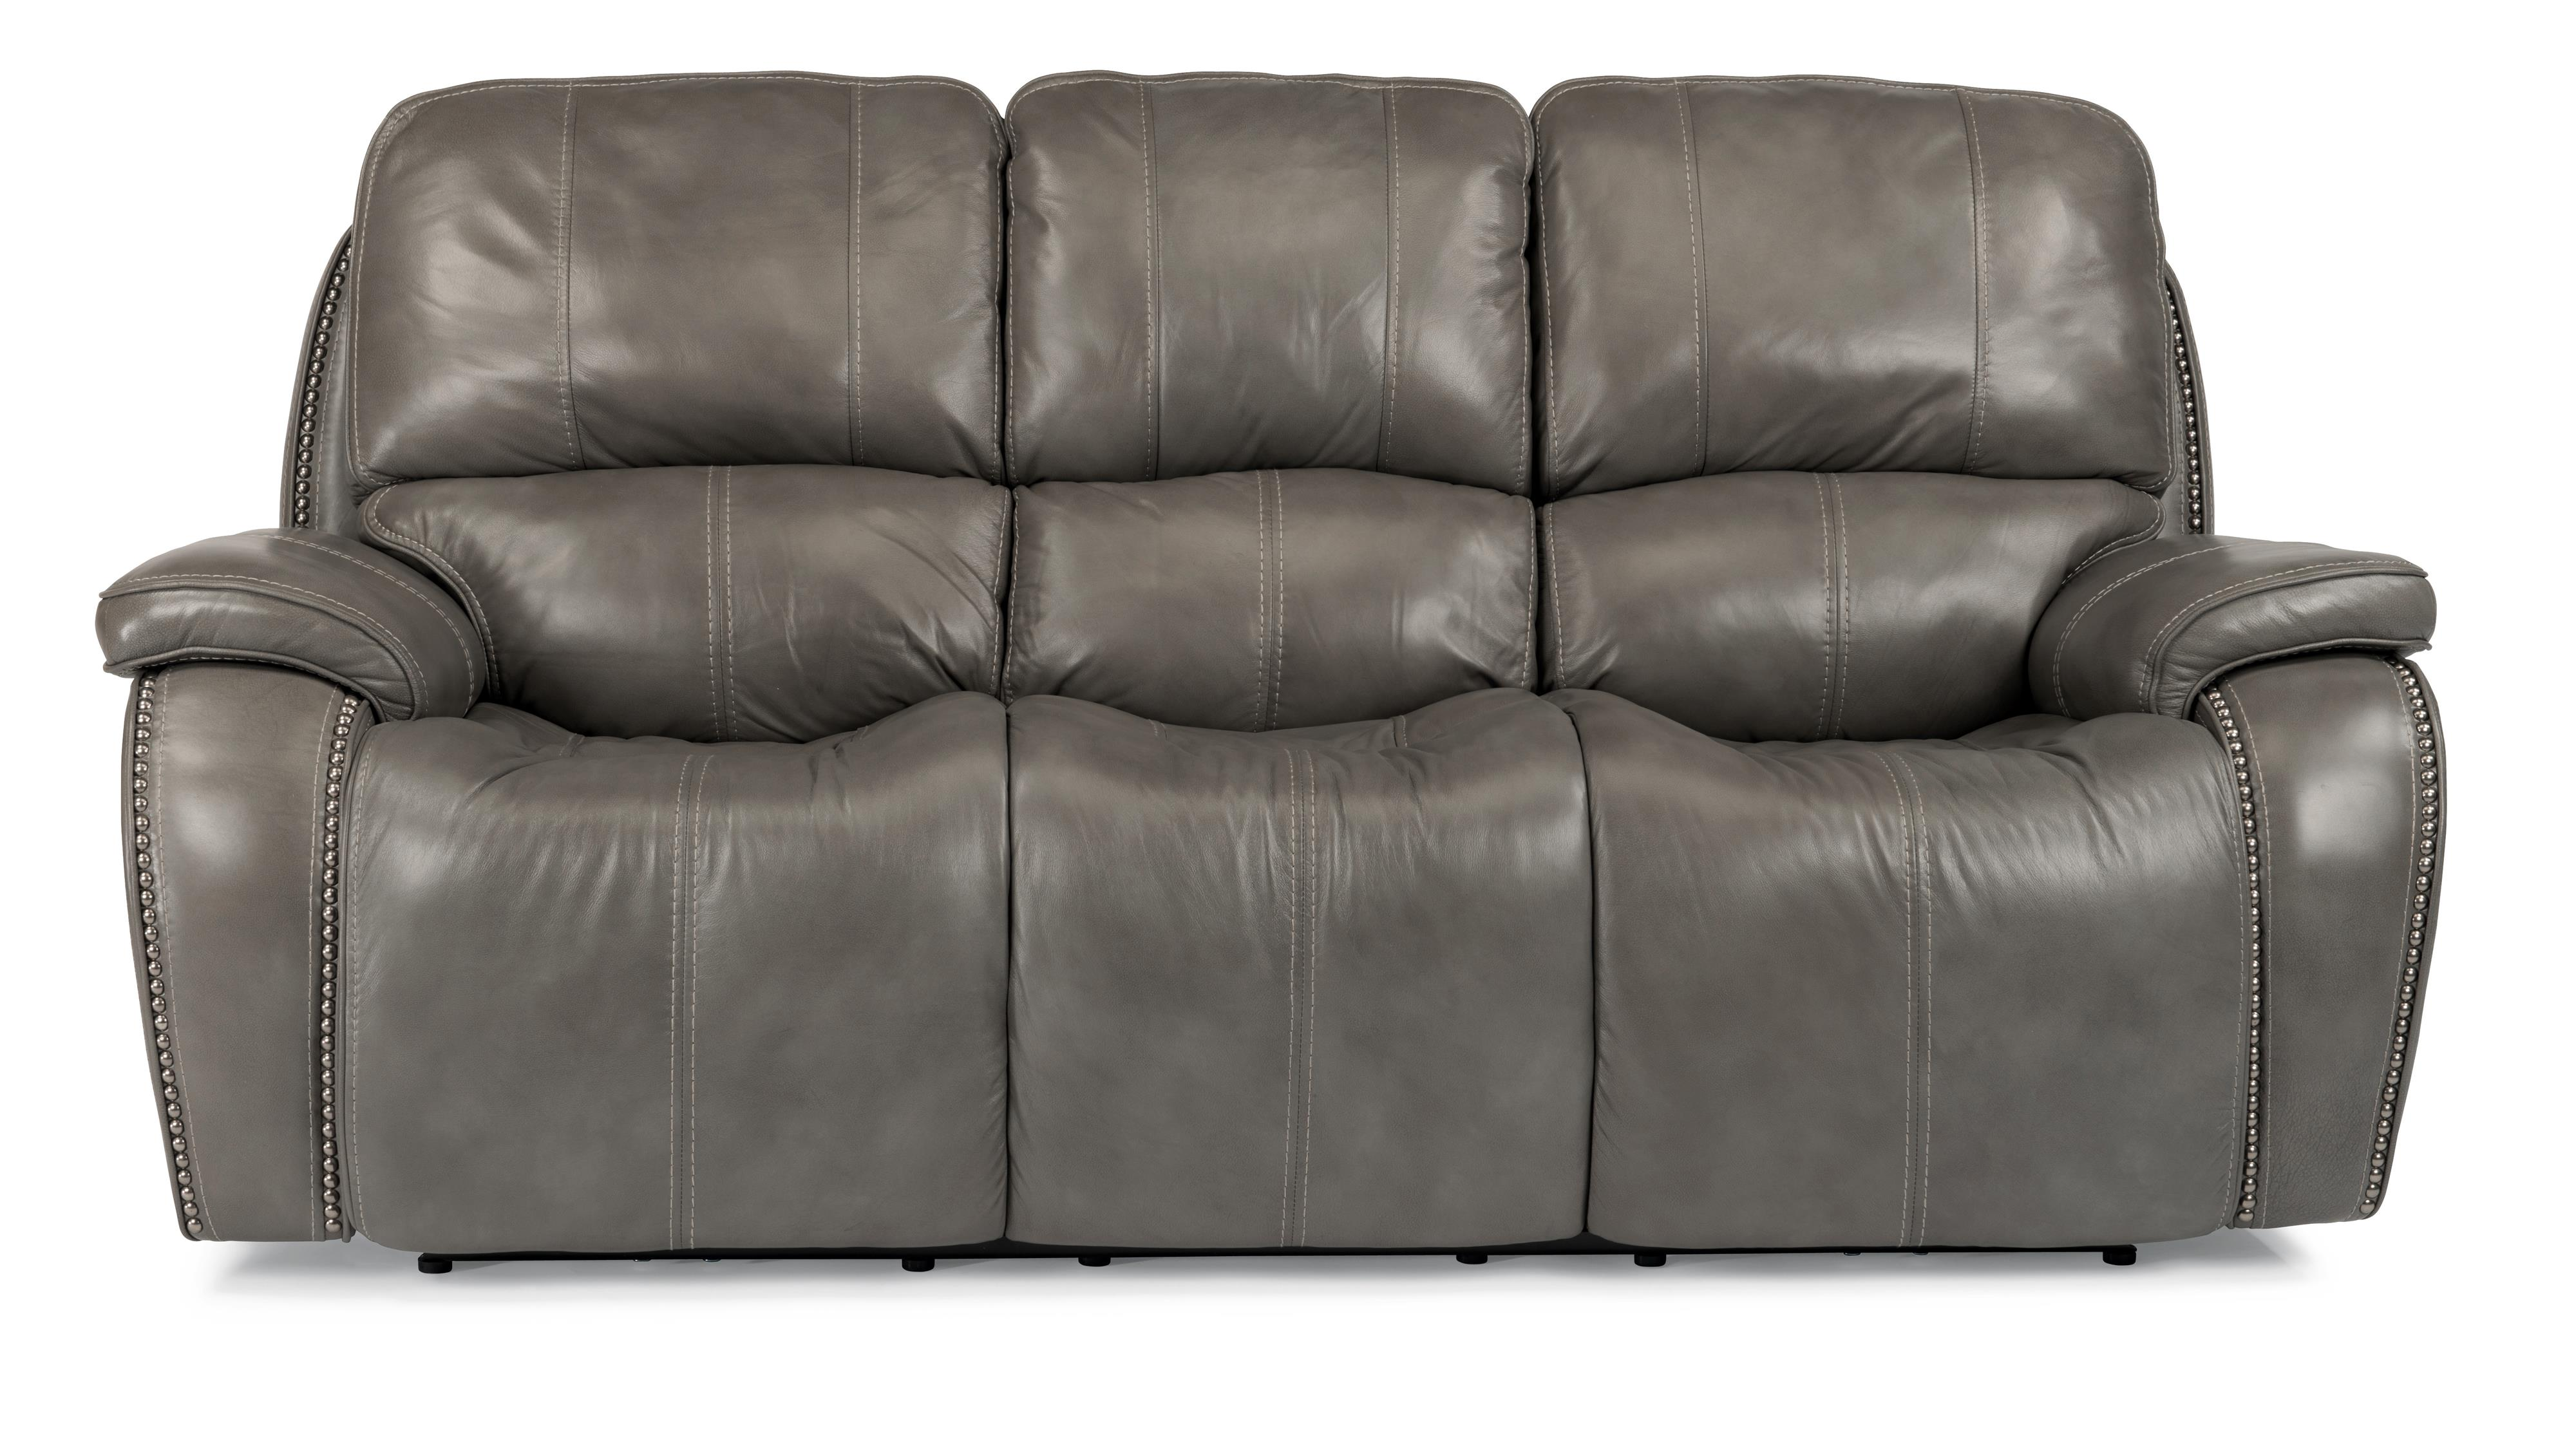 Flexsteel Latitudes-MacKay Power Reclining Sofa - Item Number: 1617-62P-014-07LV